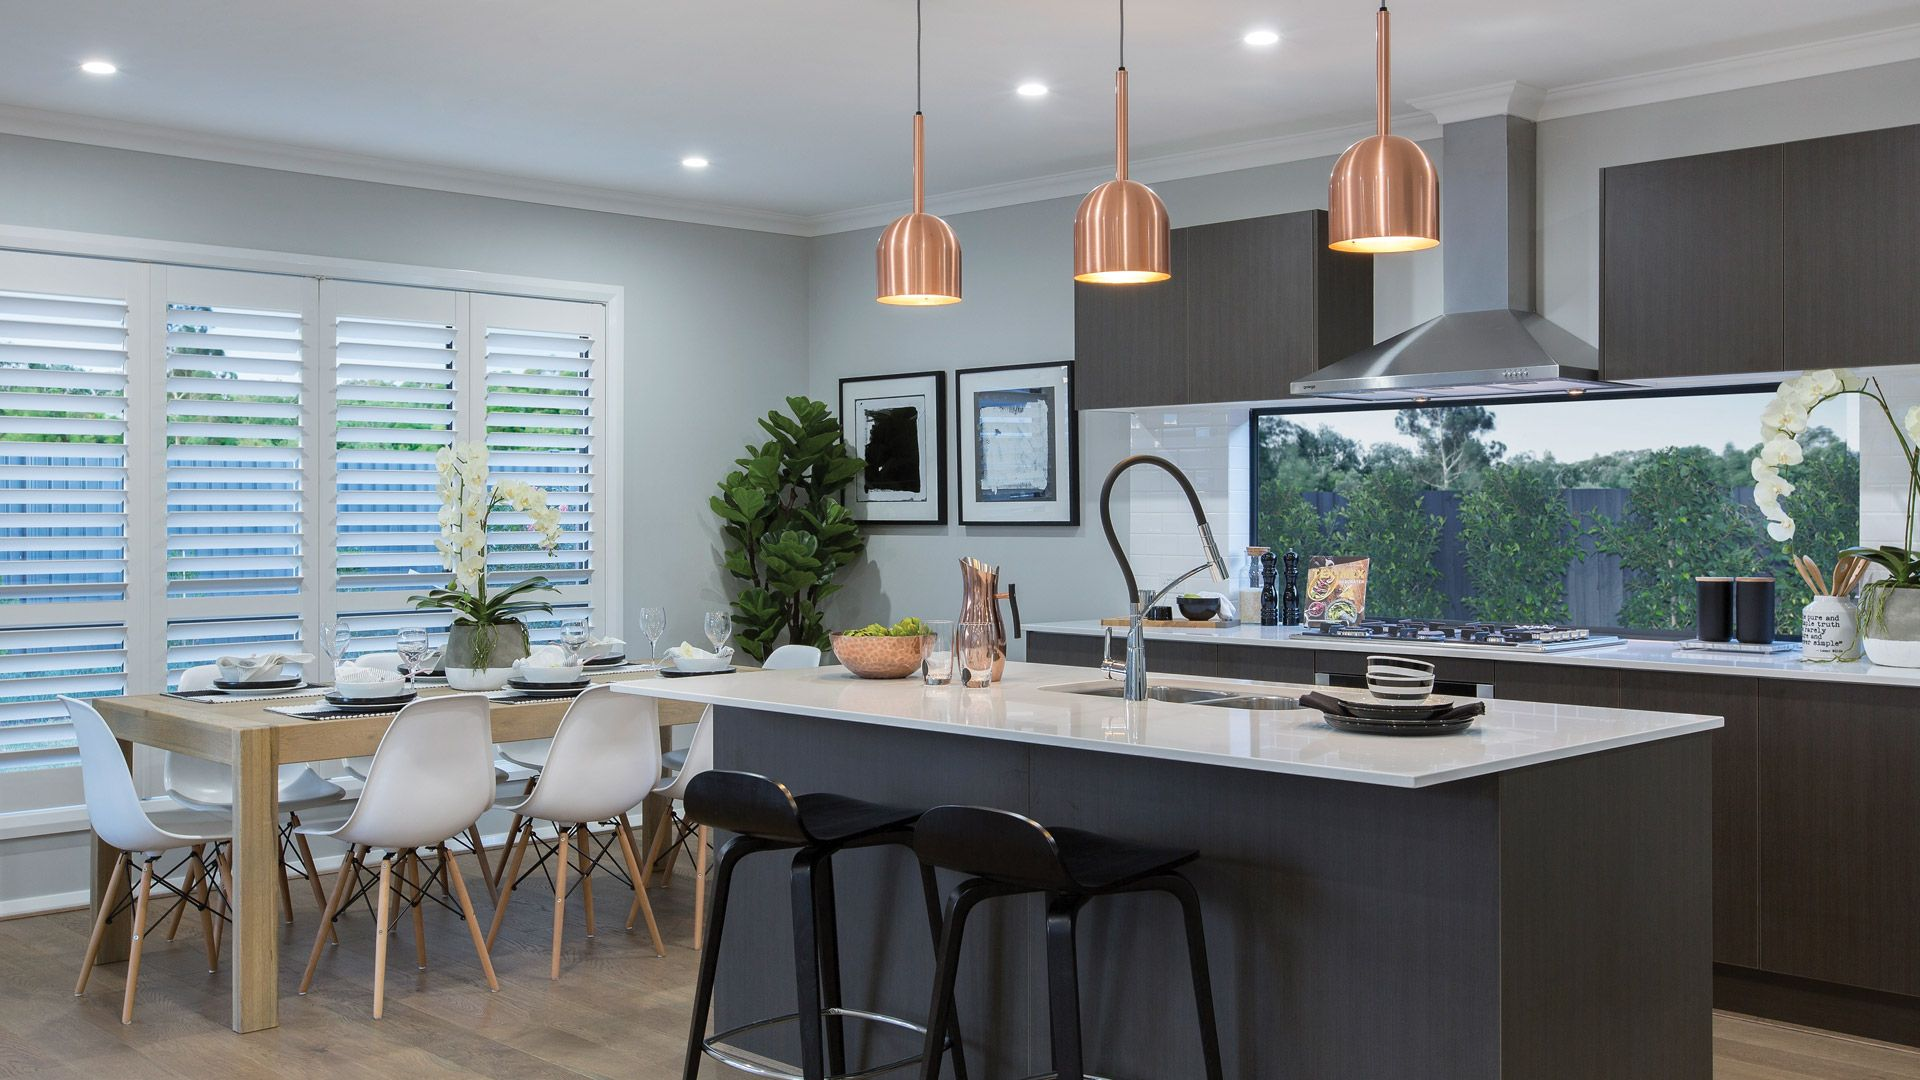 Take A Look At The Bristol Home Design. View More Home Designs At Eden Brae